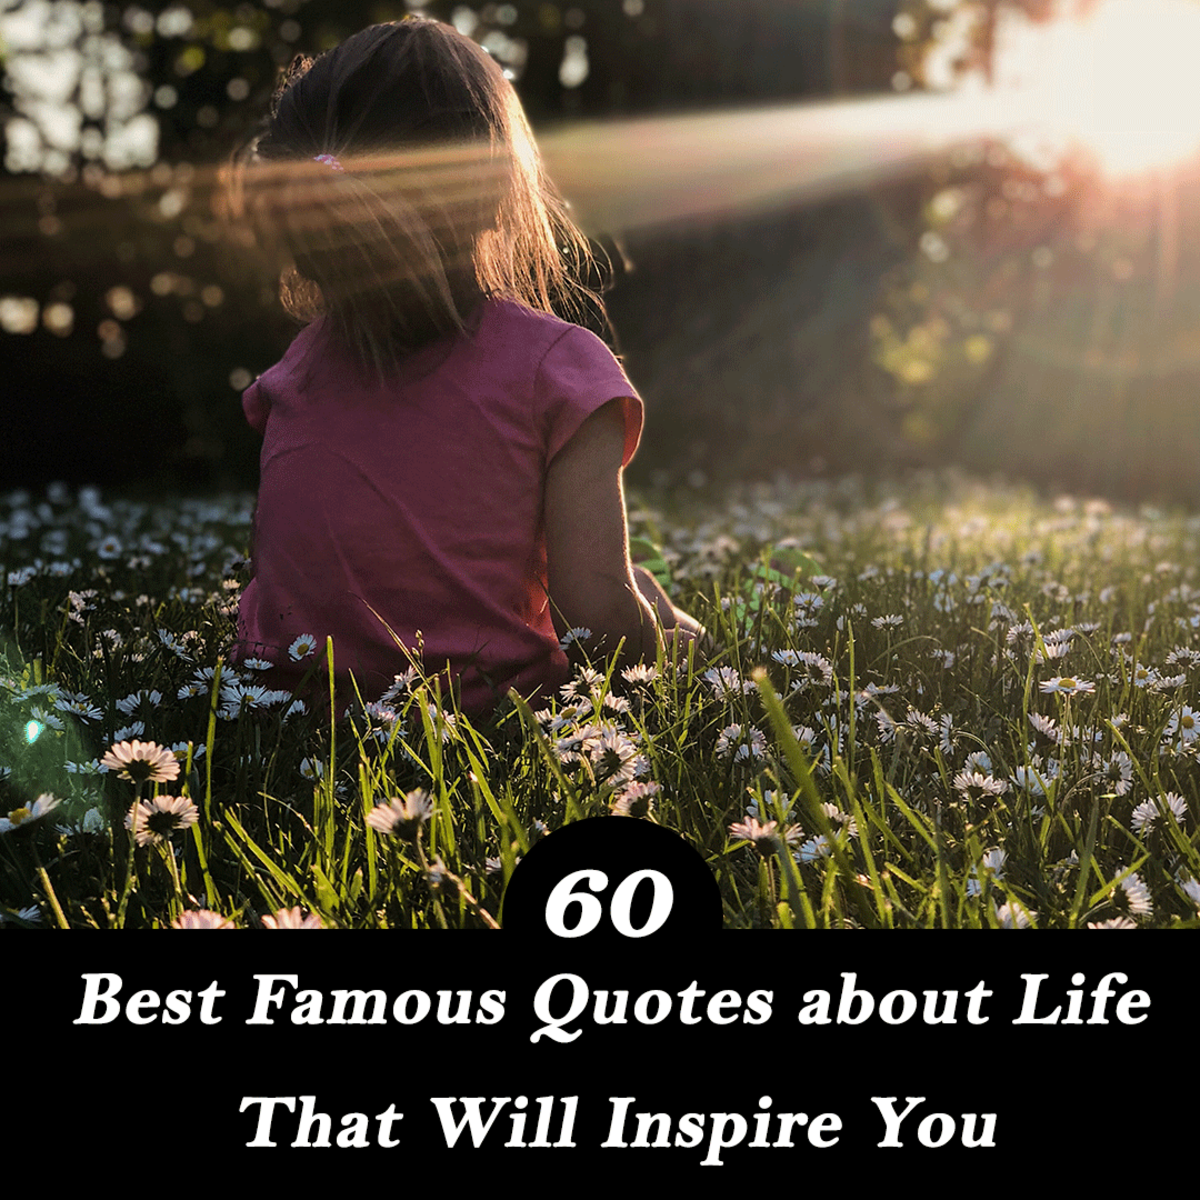 72 Best Famous Quotes about Life That Will Inspire You